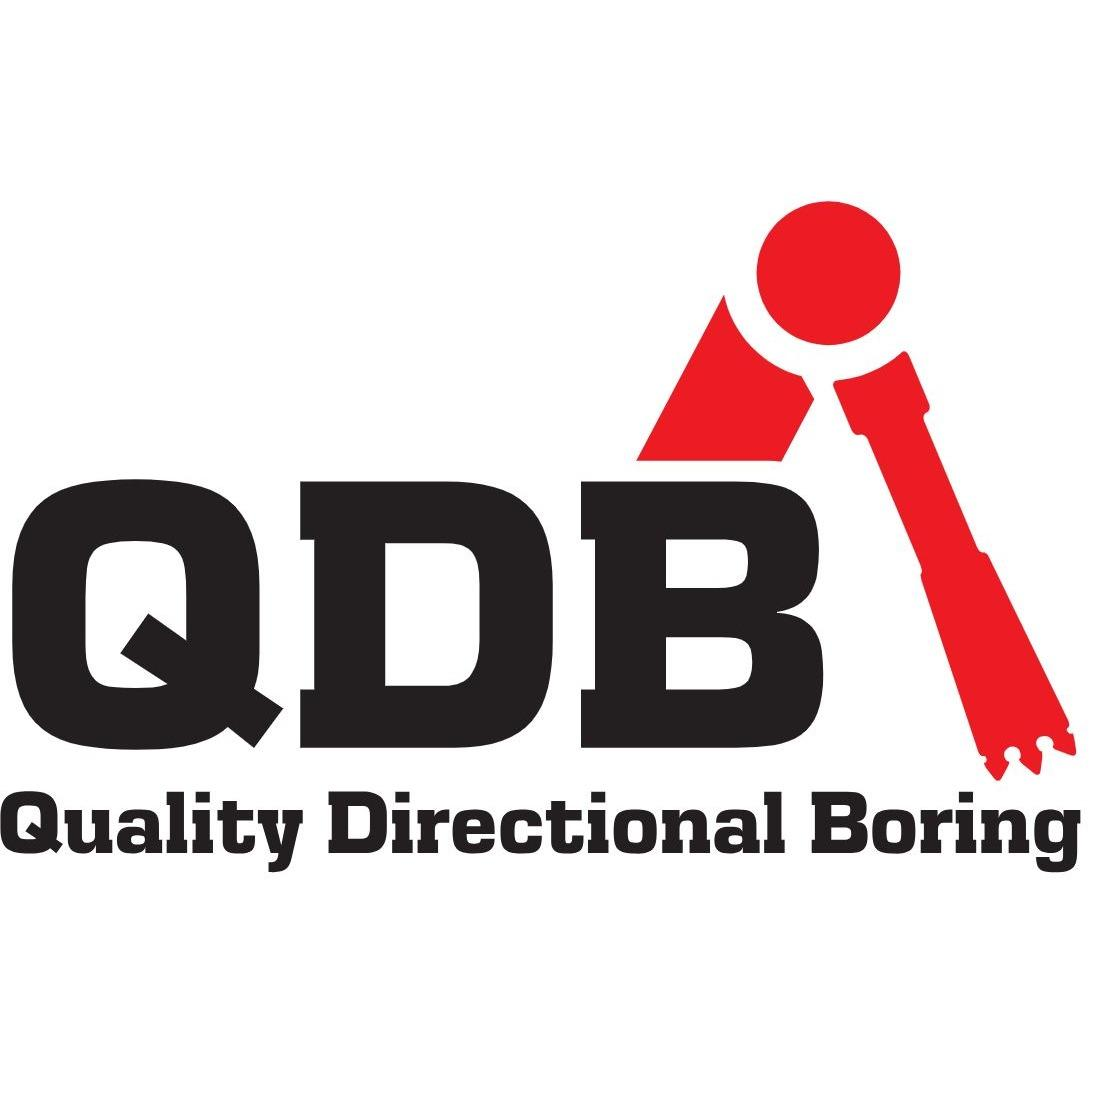 Quality Directional Boring